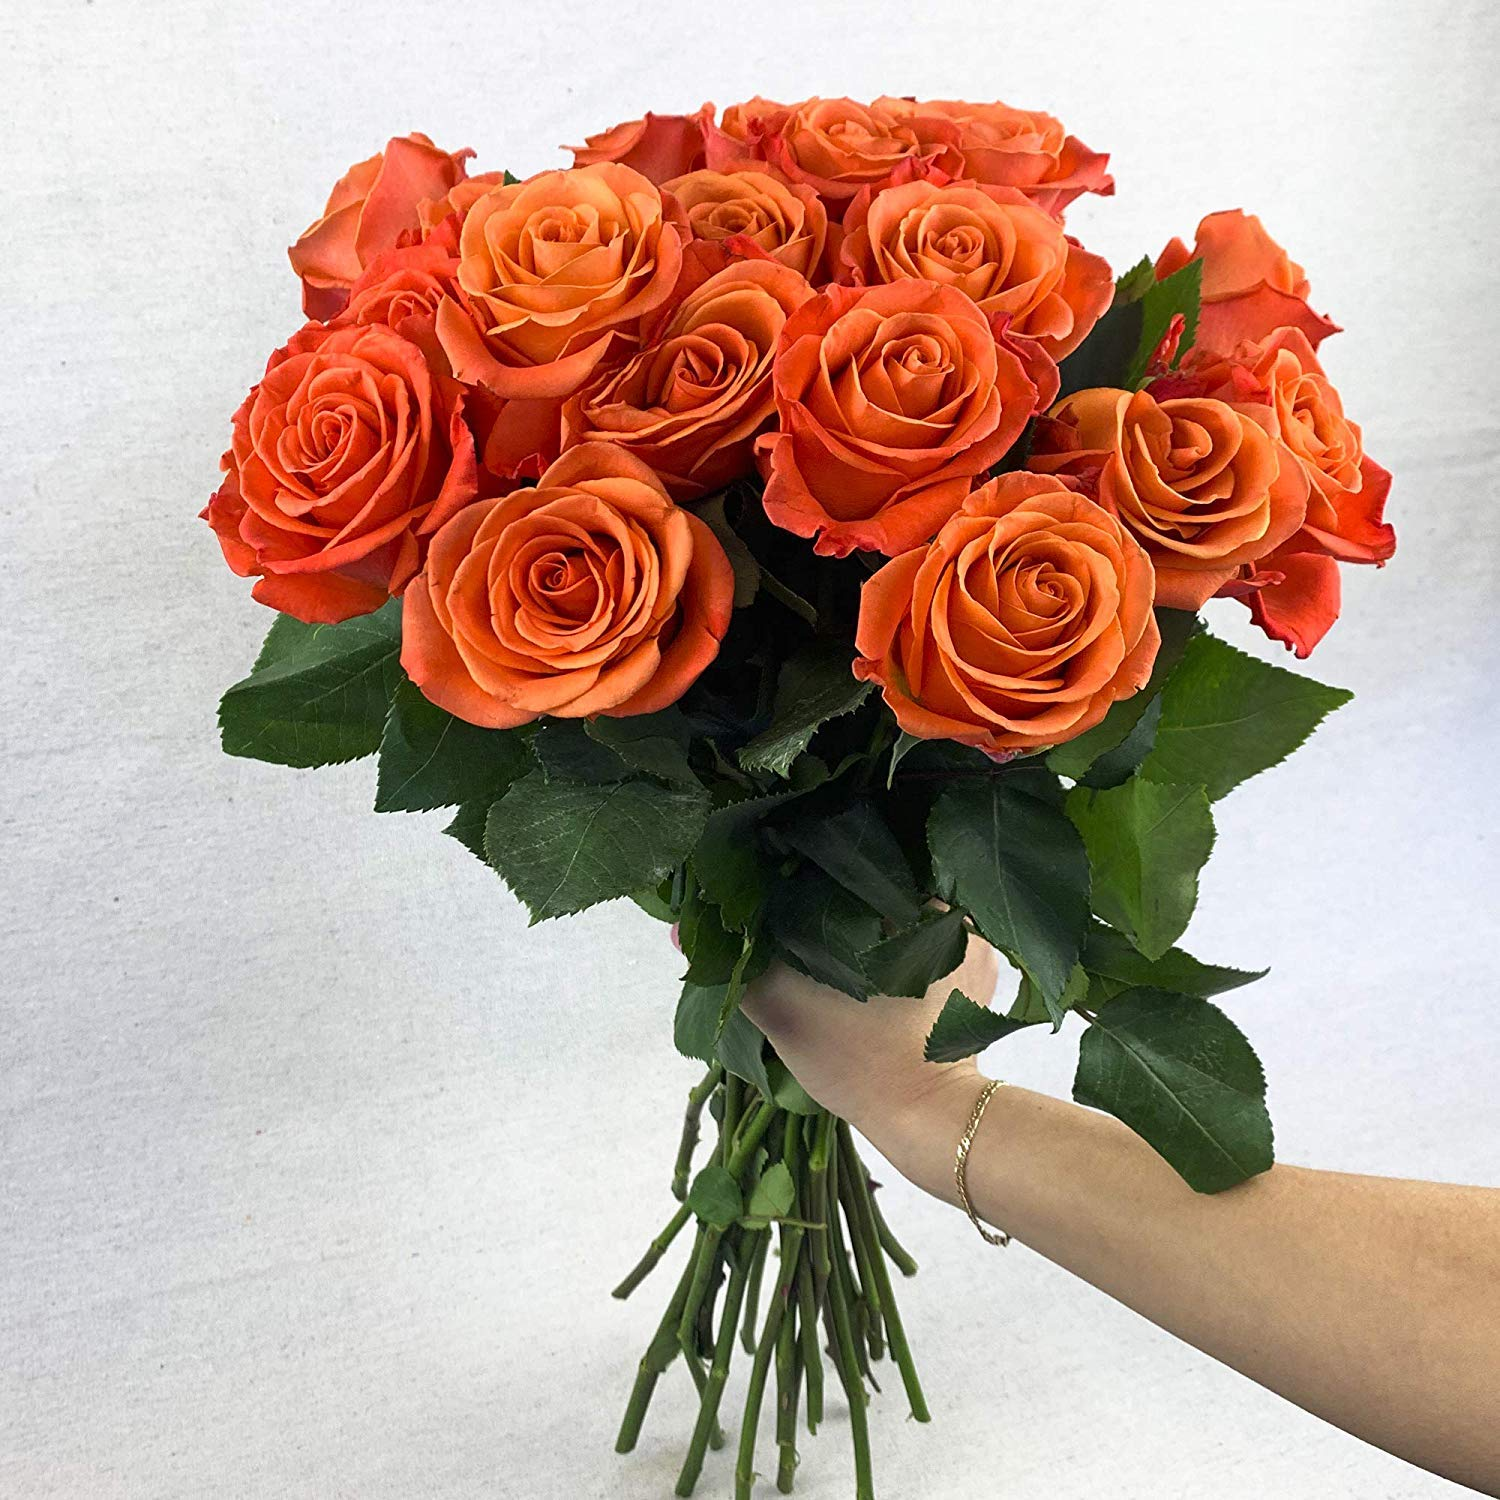 Green Choice Flowers - 24 (2 Dozen) Premium Orange Fresh Roses with 20 inch Long Stem Farm Fresh Flowers Beautiful Orange Rose Flower Cut Per Order Direct from Farm Free Fast Delivery Long Lasting by Greenchoiceflowers (Image #3)